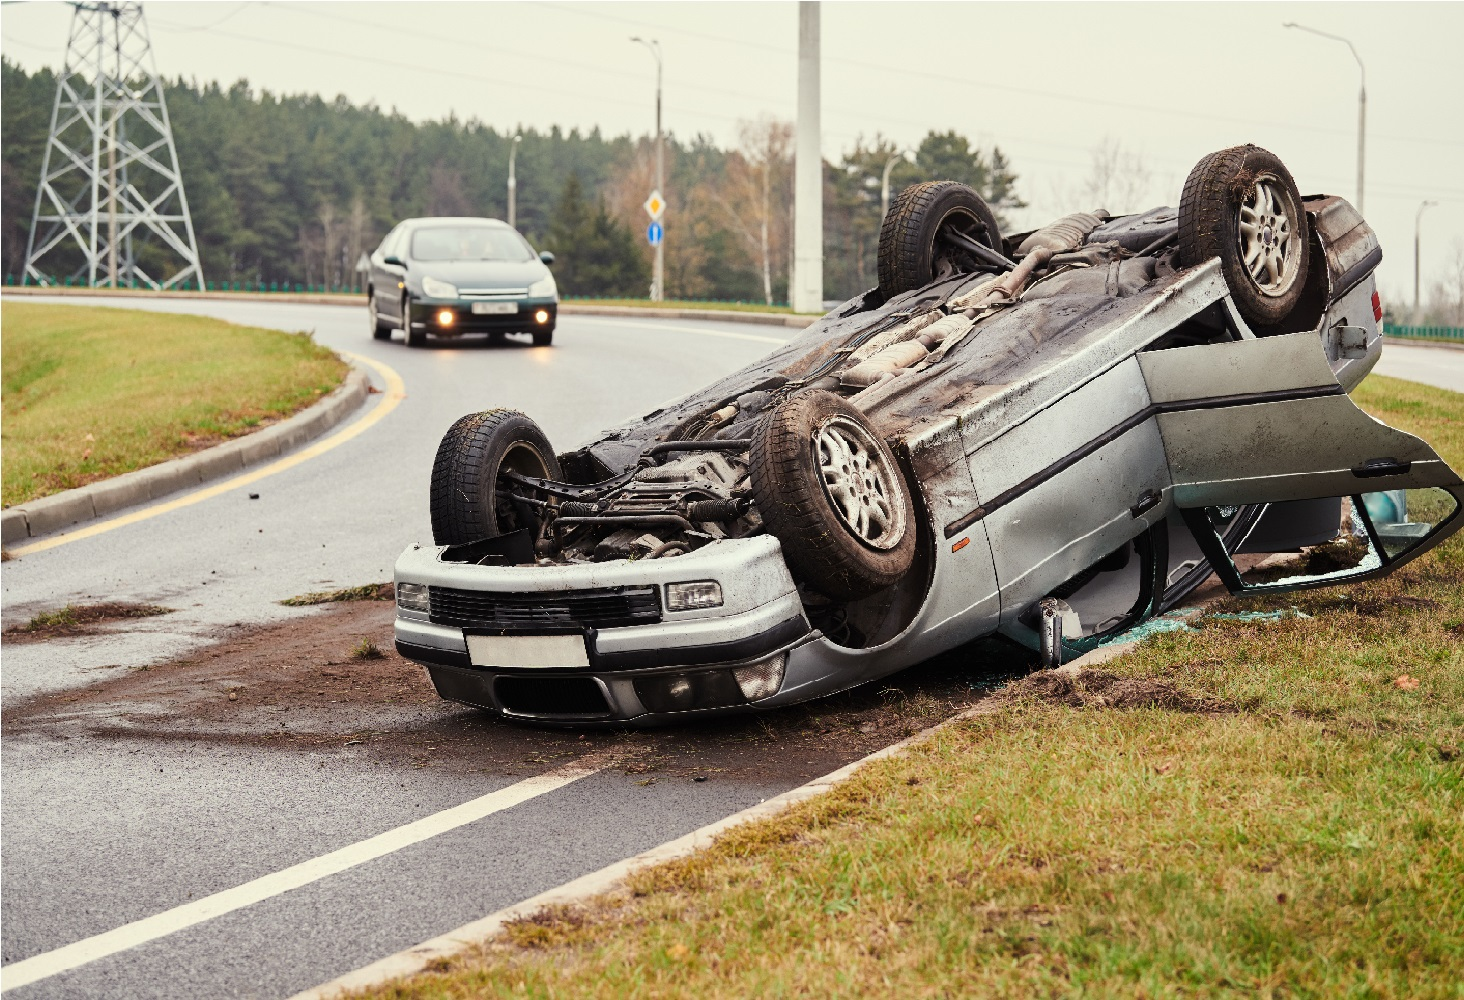 The Proper Steps to Take After a Car Accident